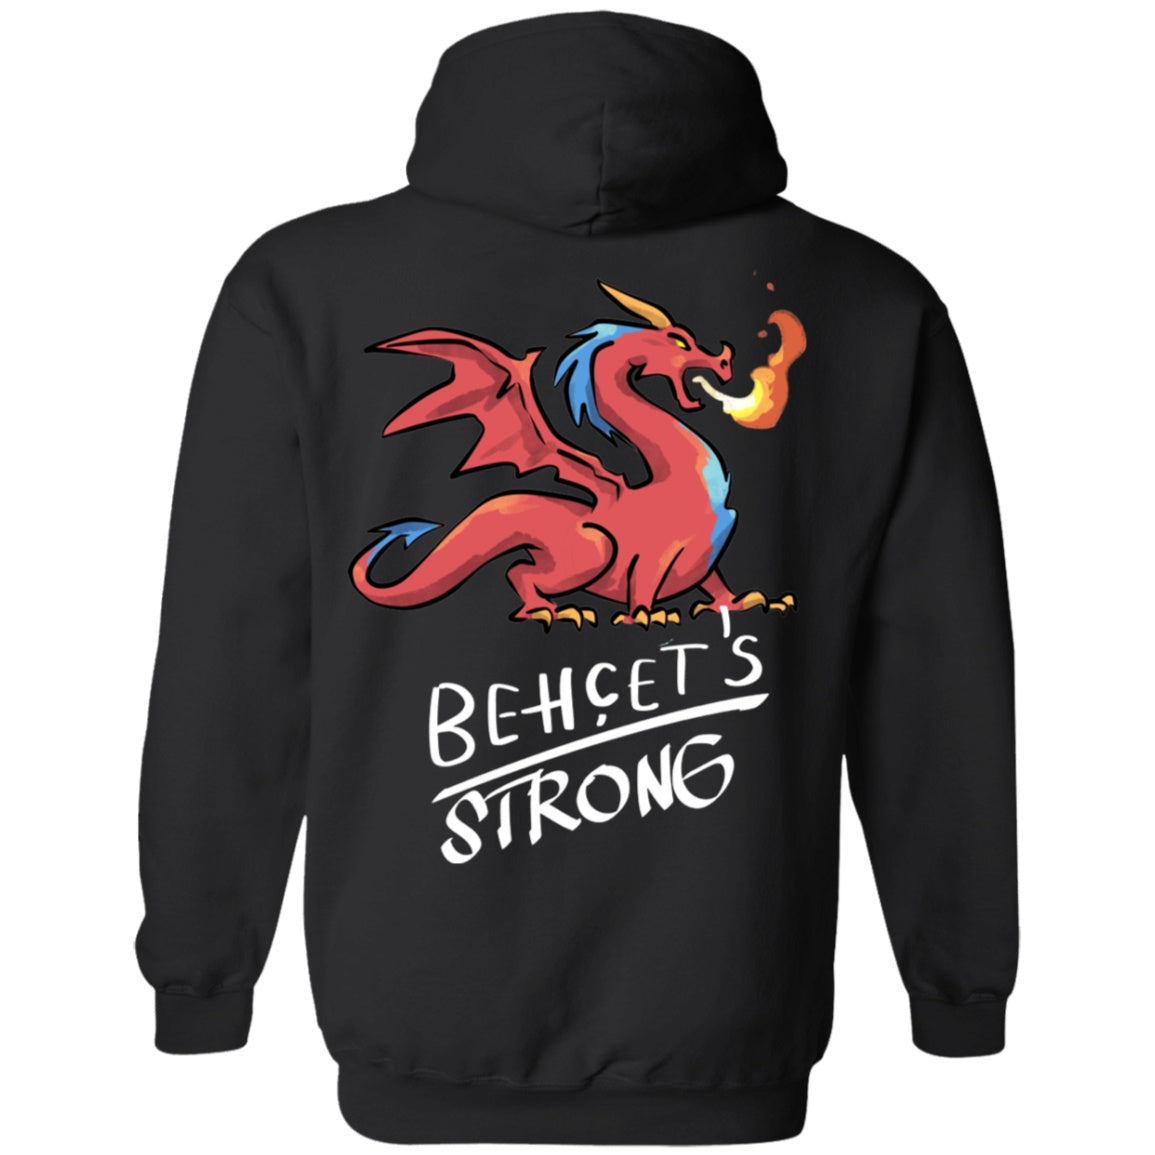 Behcets Strong Dragon Pullover Hoodie 8 oz. - The Unchargeables